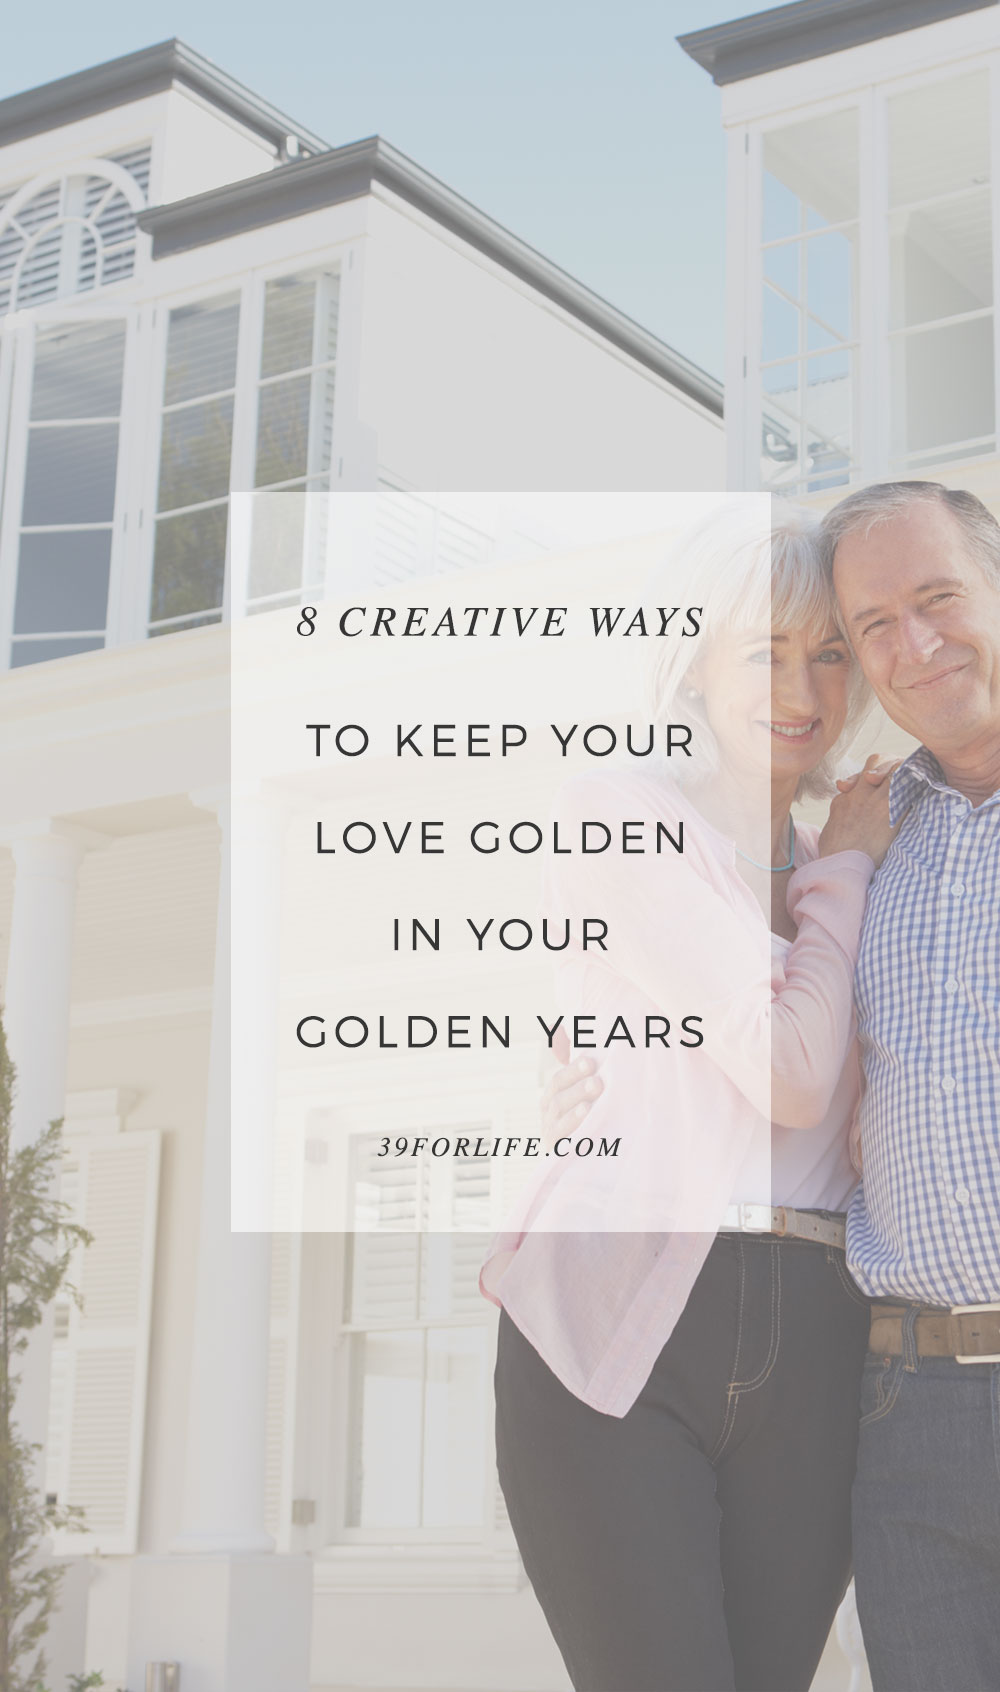 Romance makes relationships healthier and thrive well into your golden years. Here are some tips for keeping the passion alive and intimate.